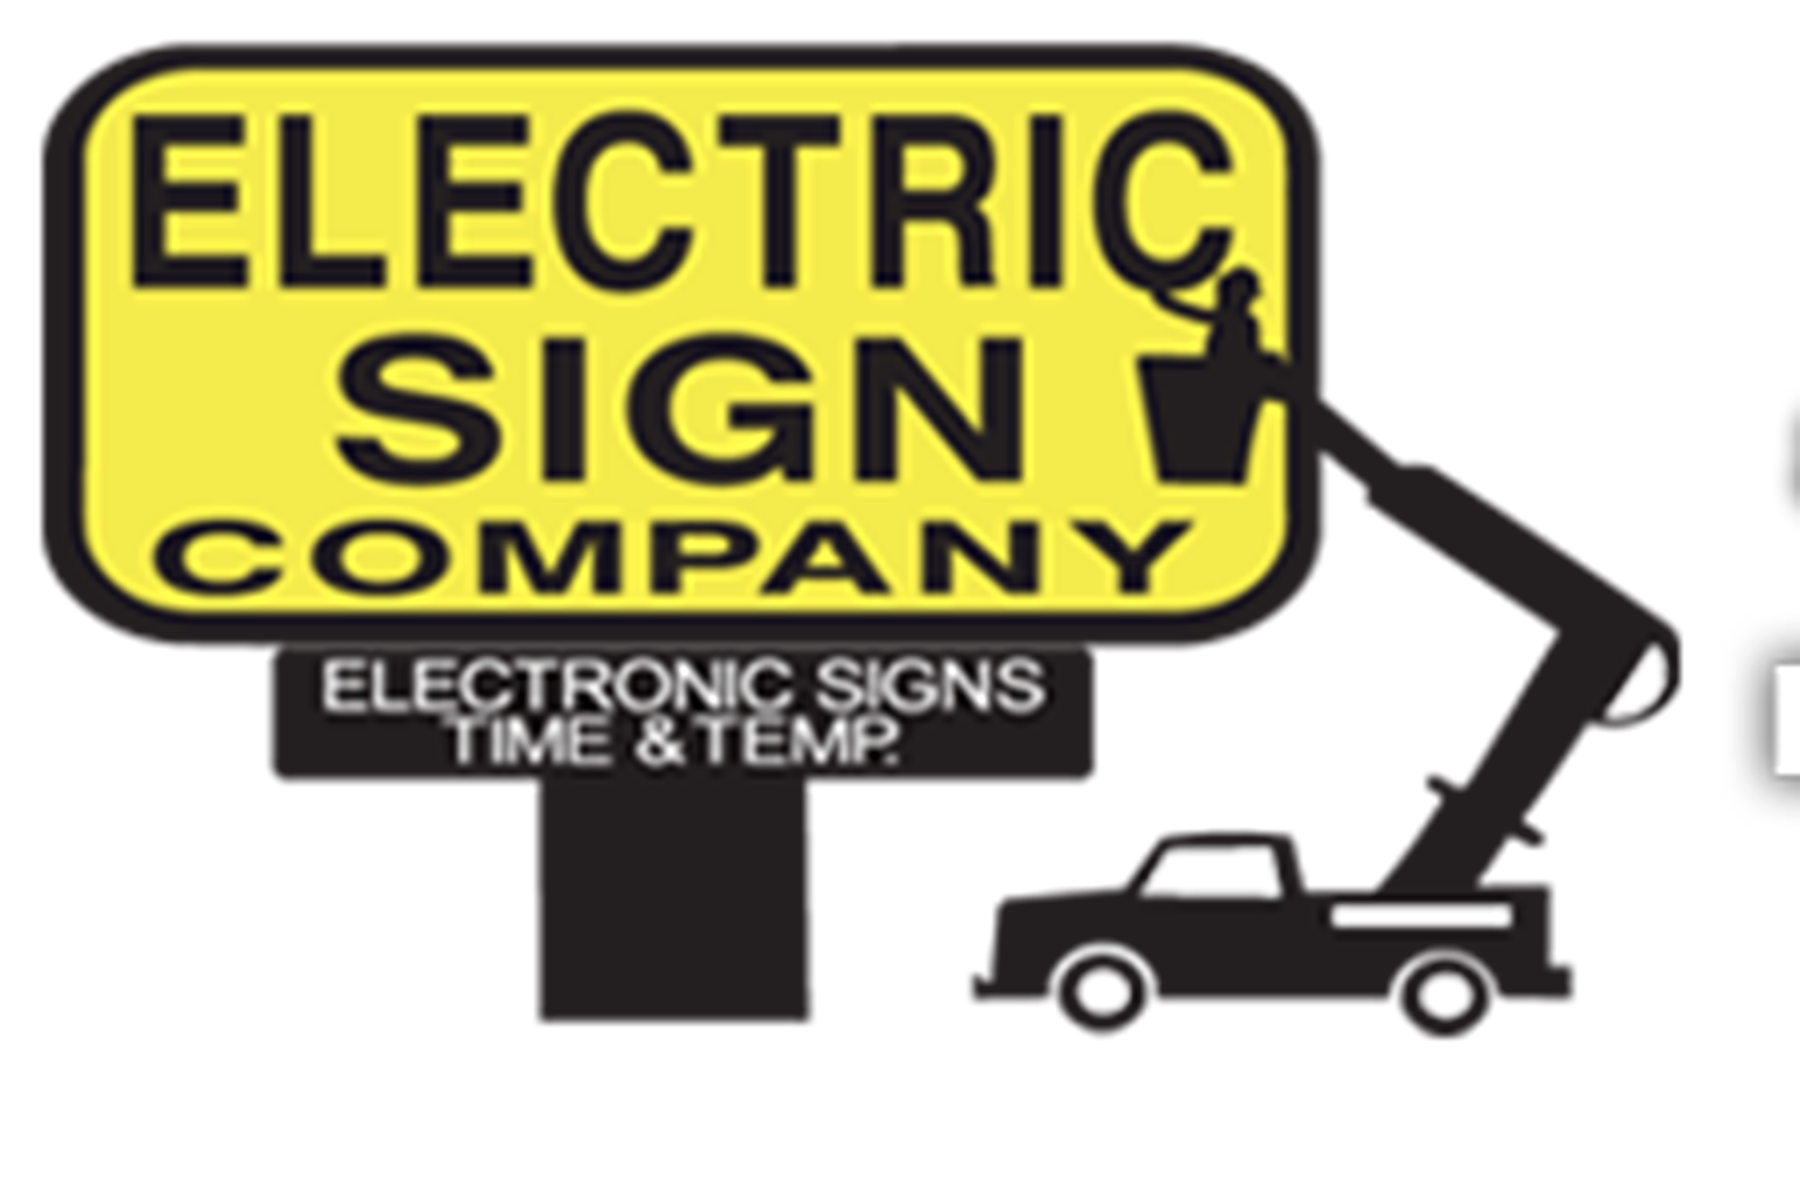 Electric Sign Company